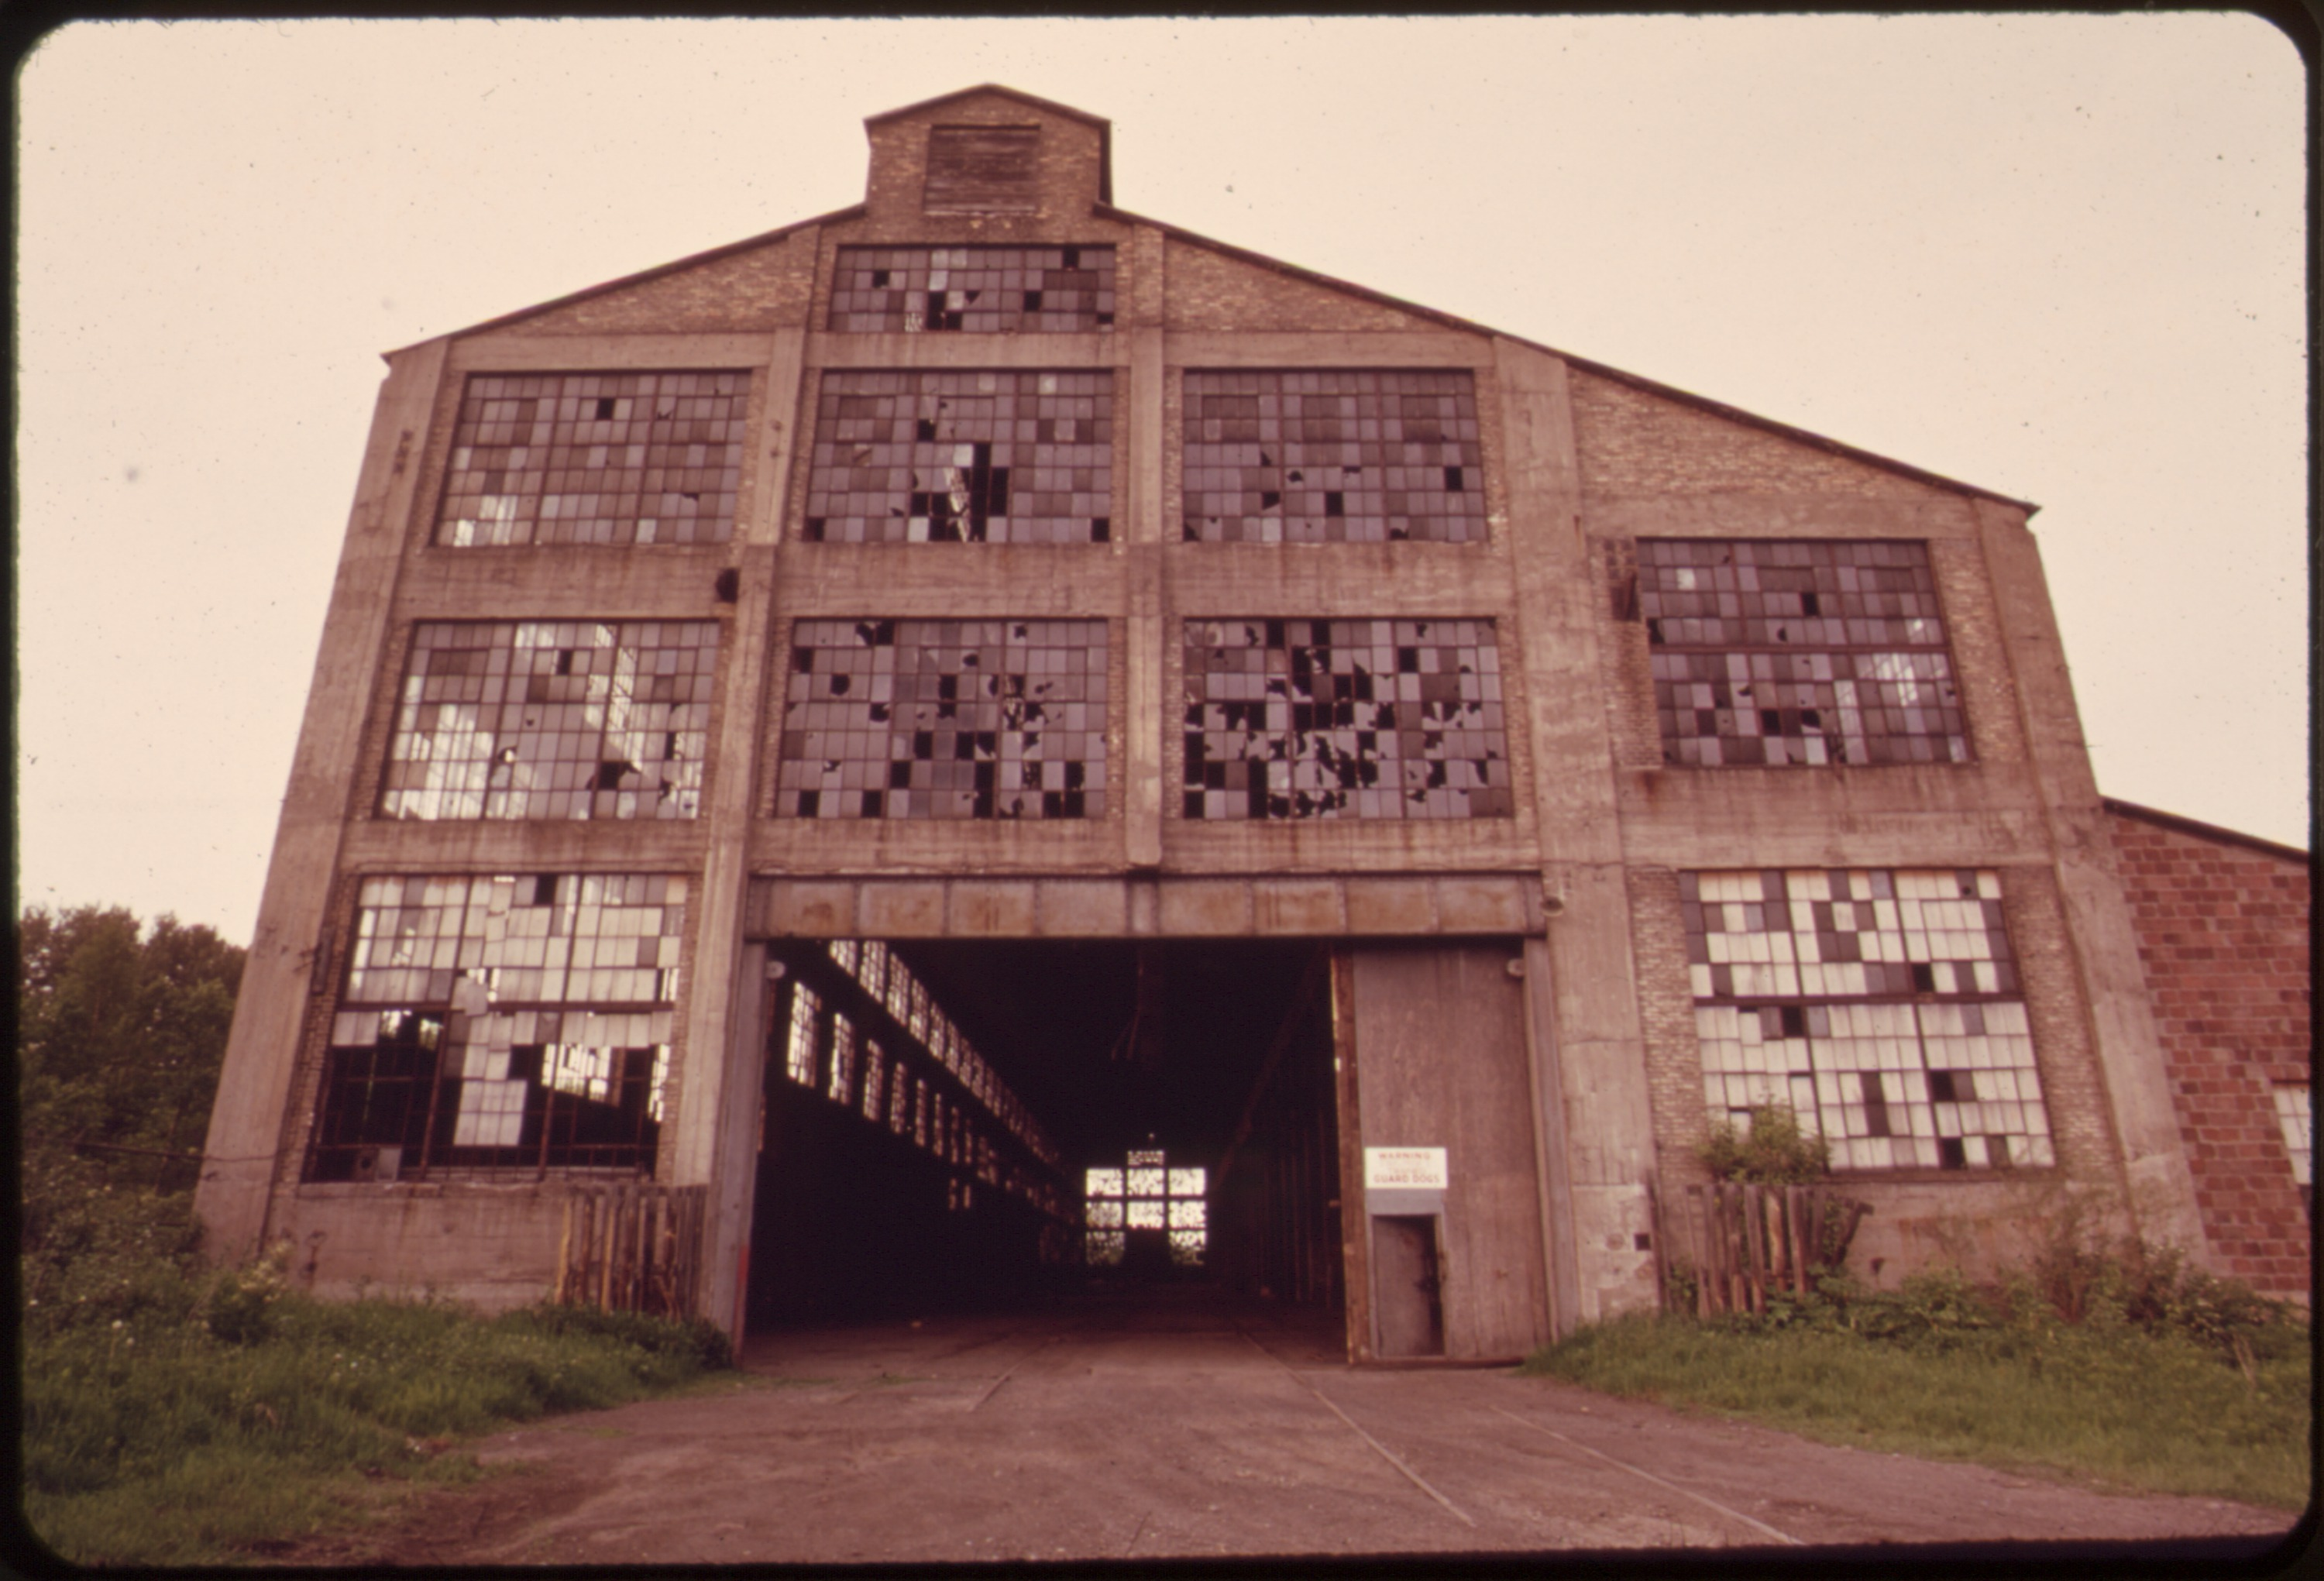 File:ABANDONED FACTORY IN RIVERSIDE, A SUBURB OF DULUTH ON